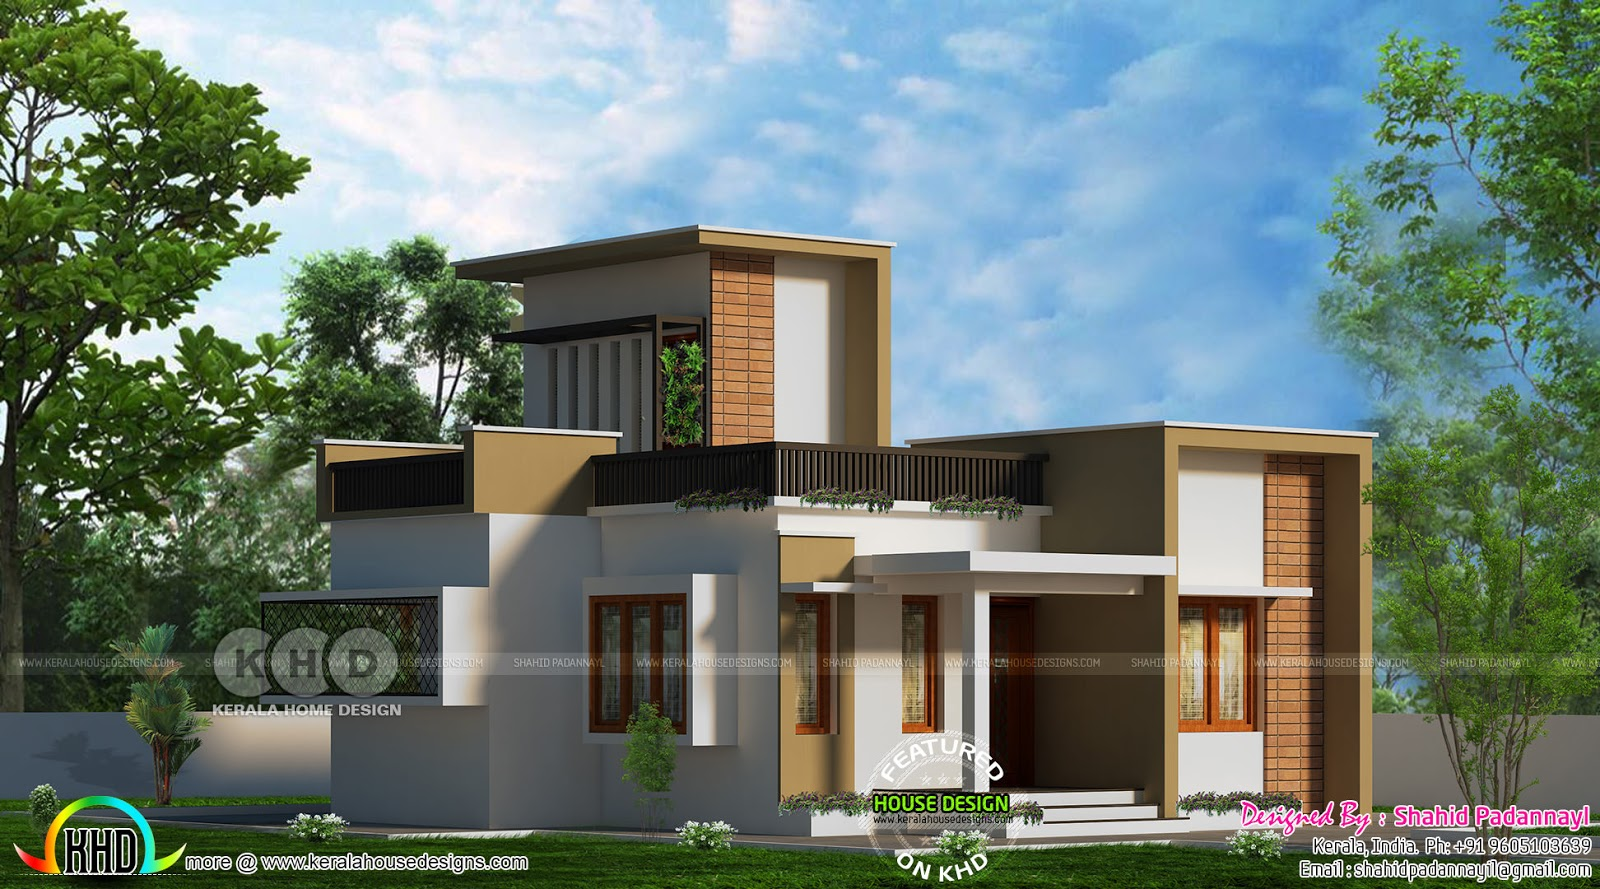 860 Sq Ft 2 Bhk House With Stair Room Kerala Home Design Bloglovin